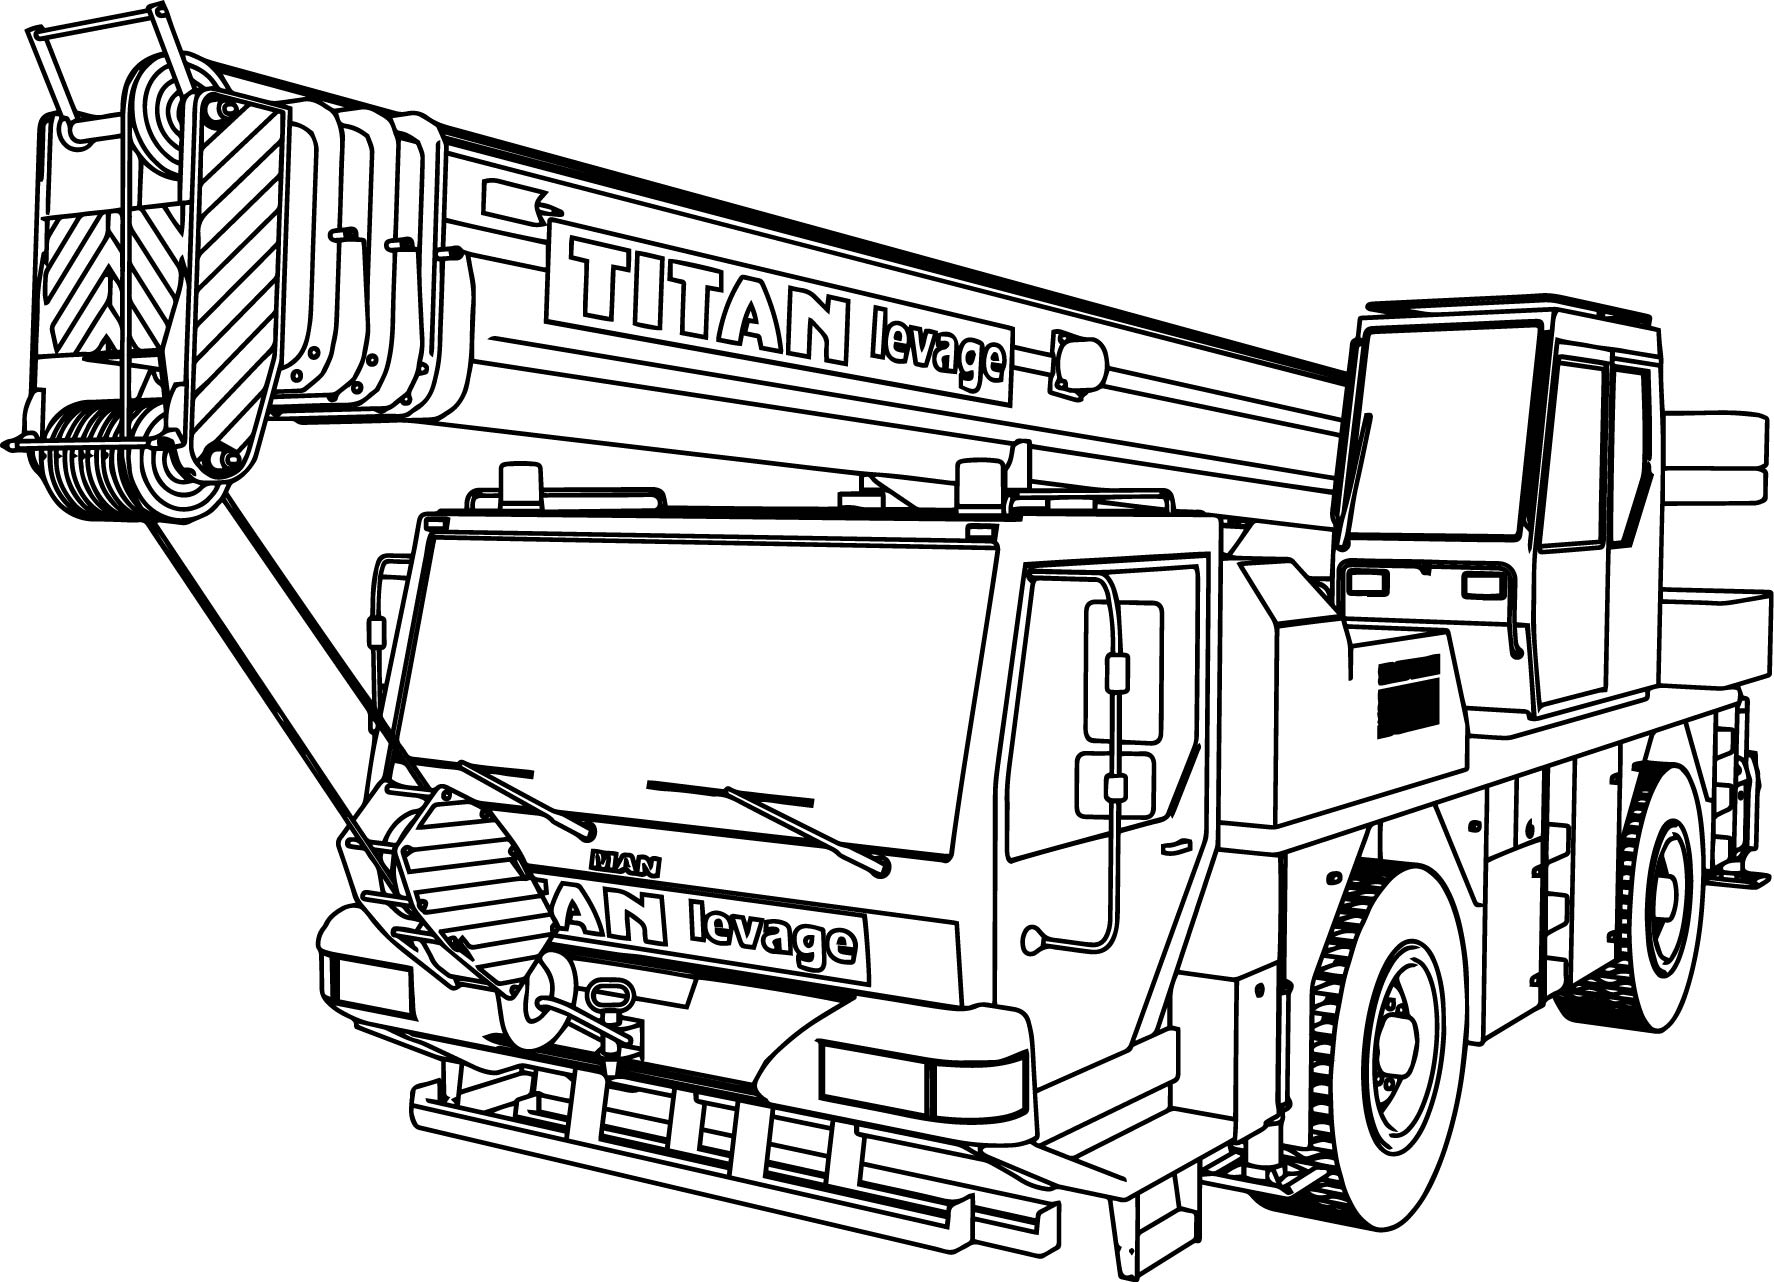 Mailman truck coloring pages